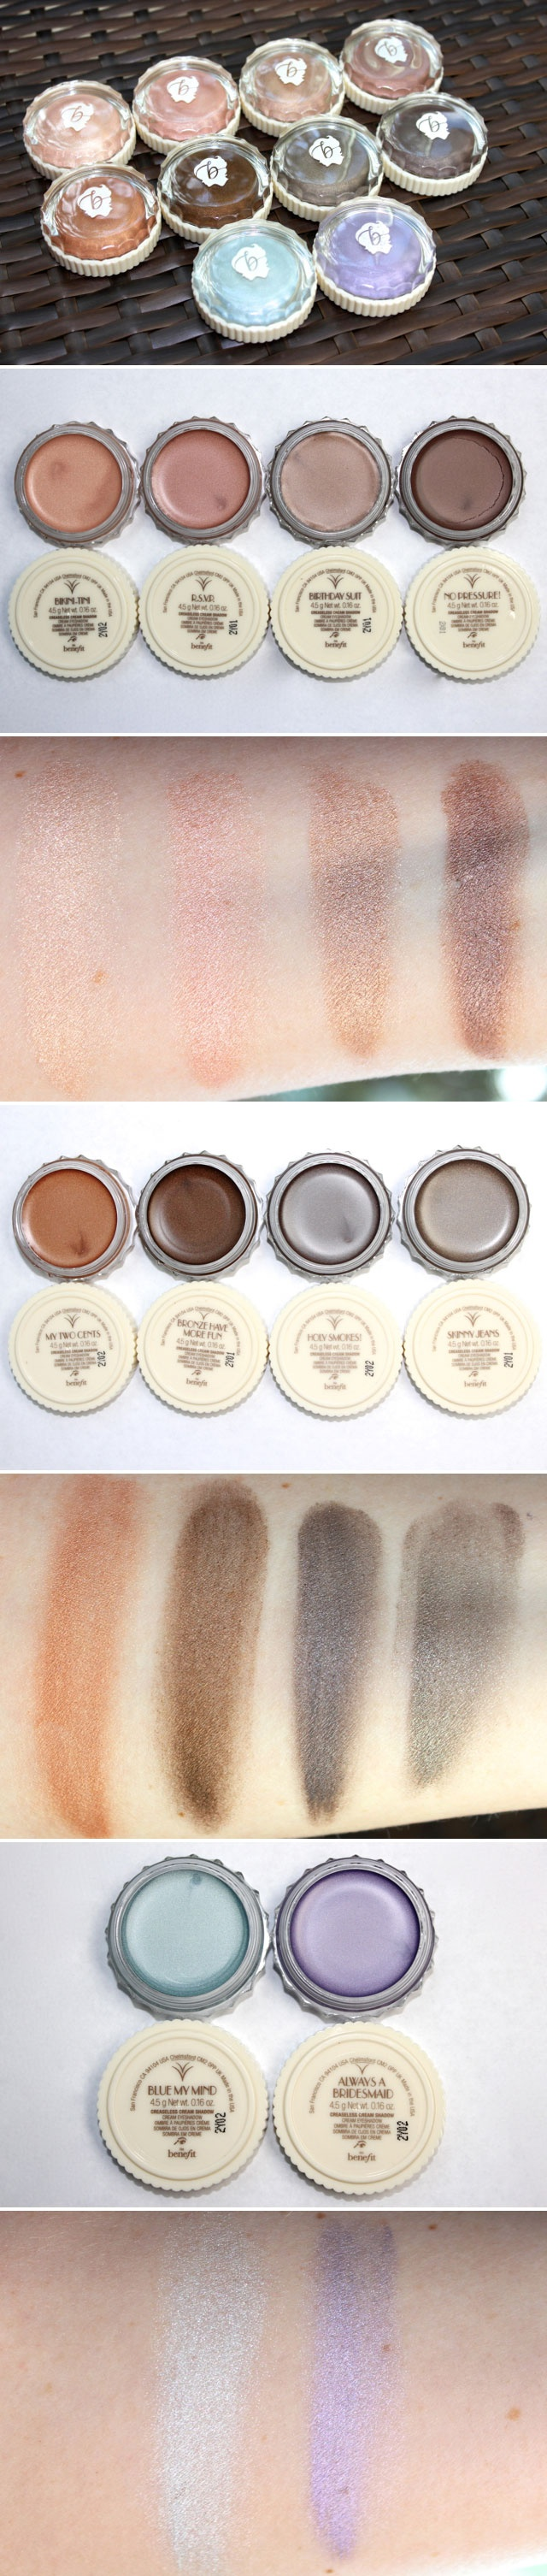 27 best wishlist images on pinterest beauty makeup make up and